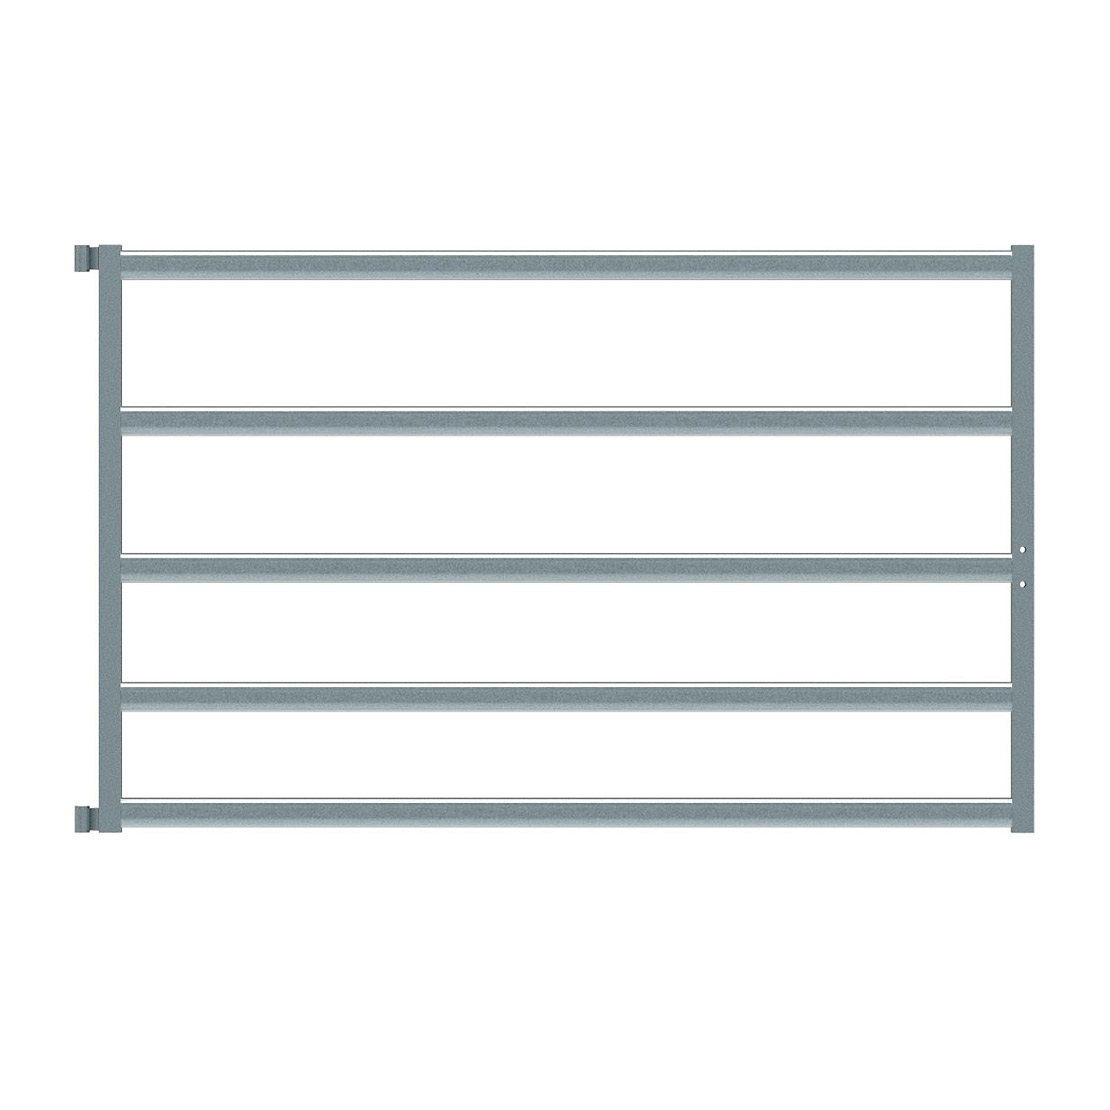 Cattle Gate 5 Rail (2100mm x 1320mm High)